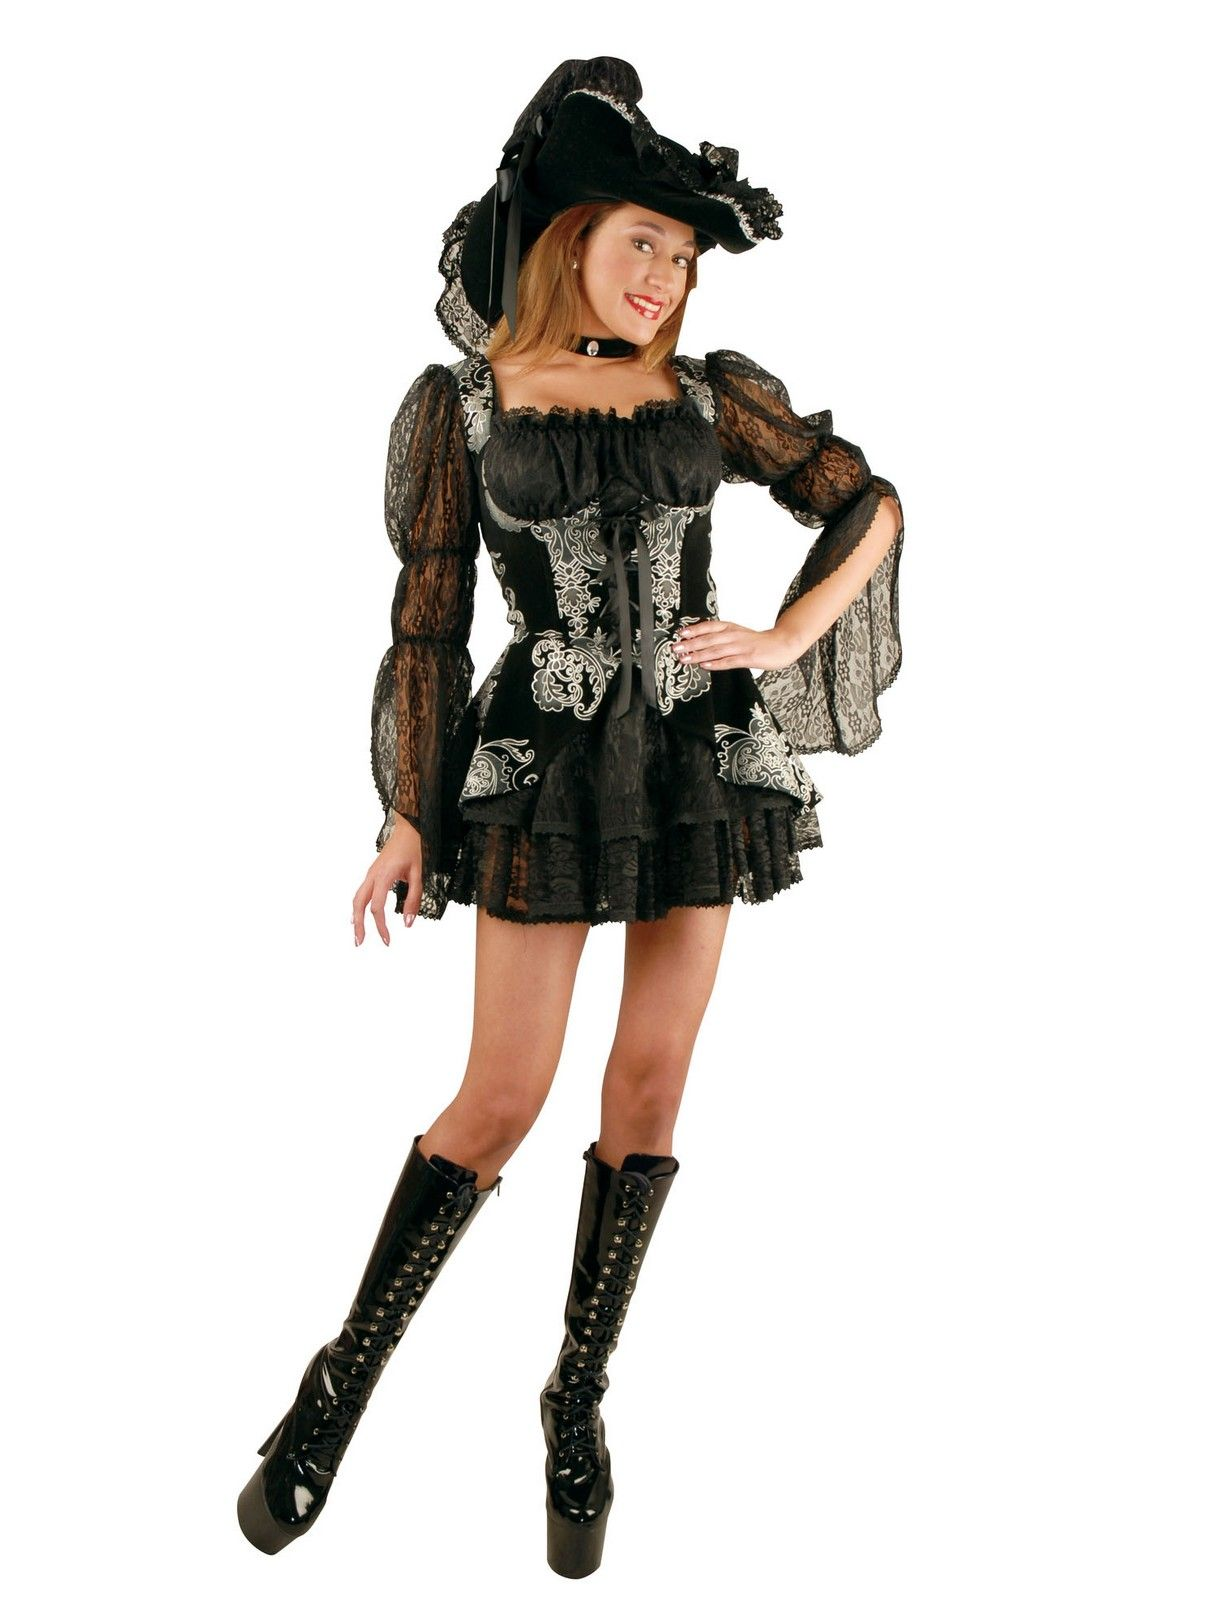 Lacey Pirate Dress Pirate dress, Costumes for women, Women